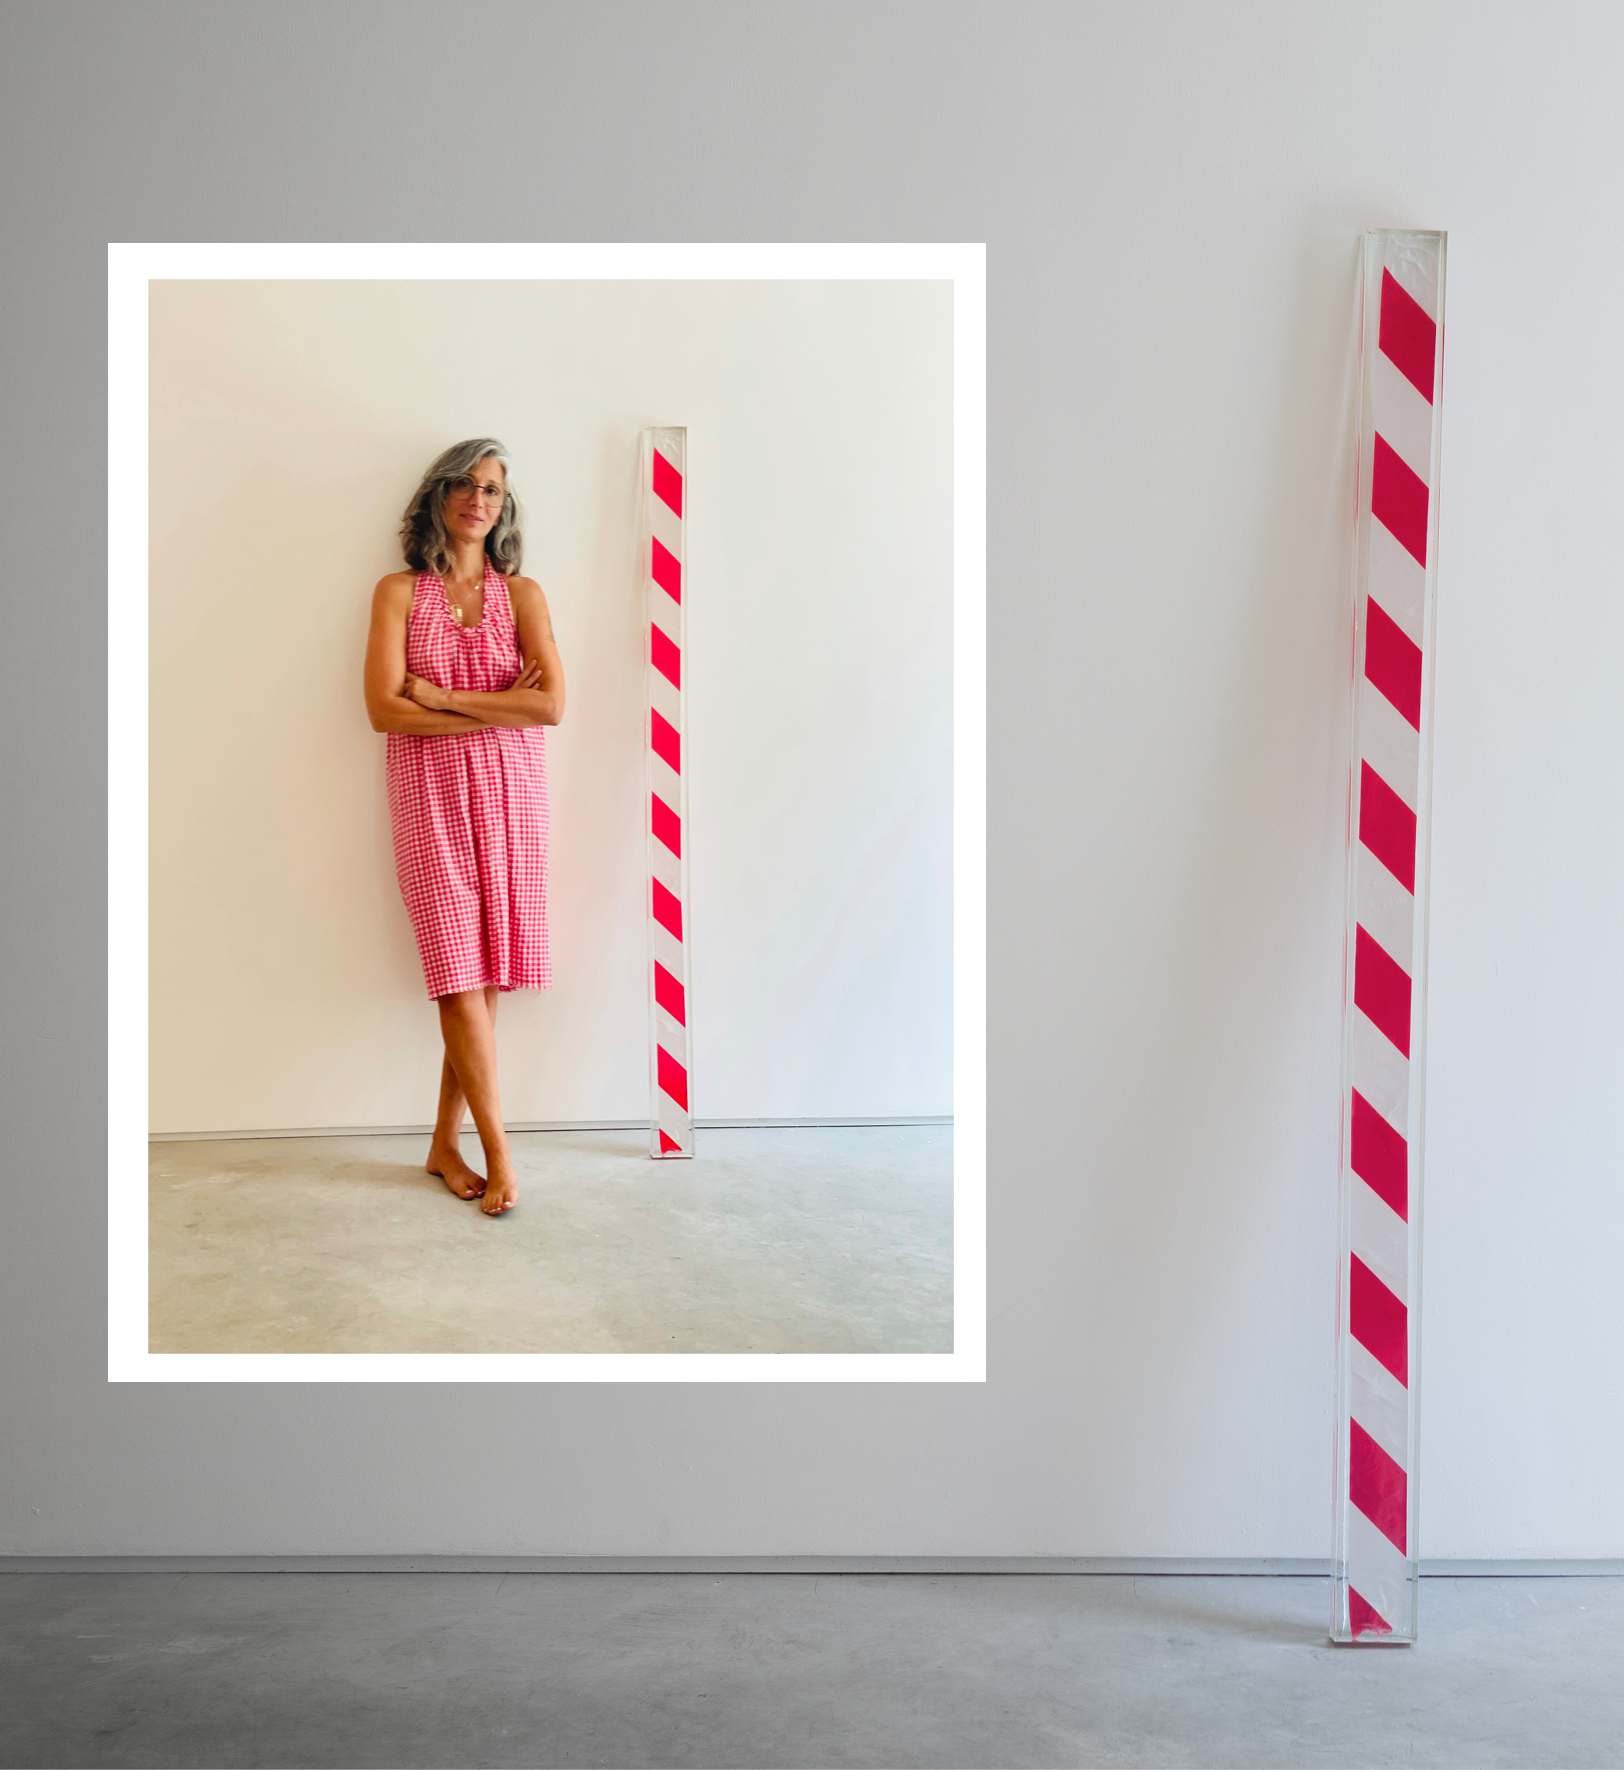 IT'S PERSONAL 2020,171x10 cm, Epoxy mold, red and white tape.